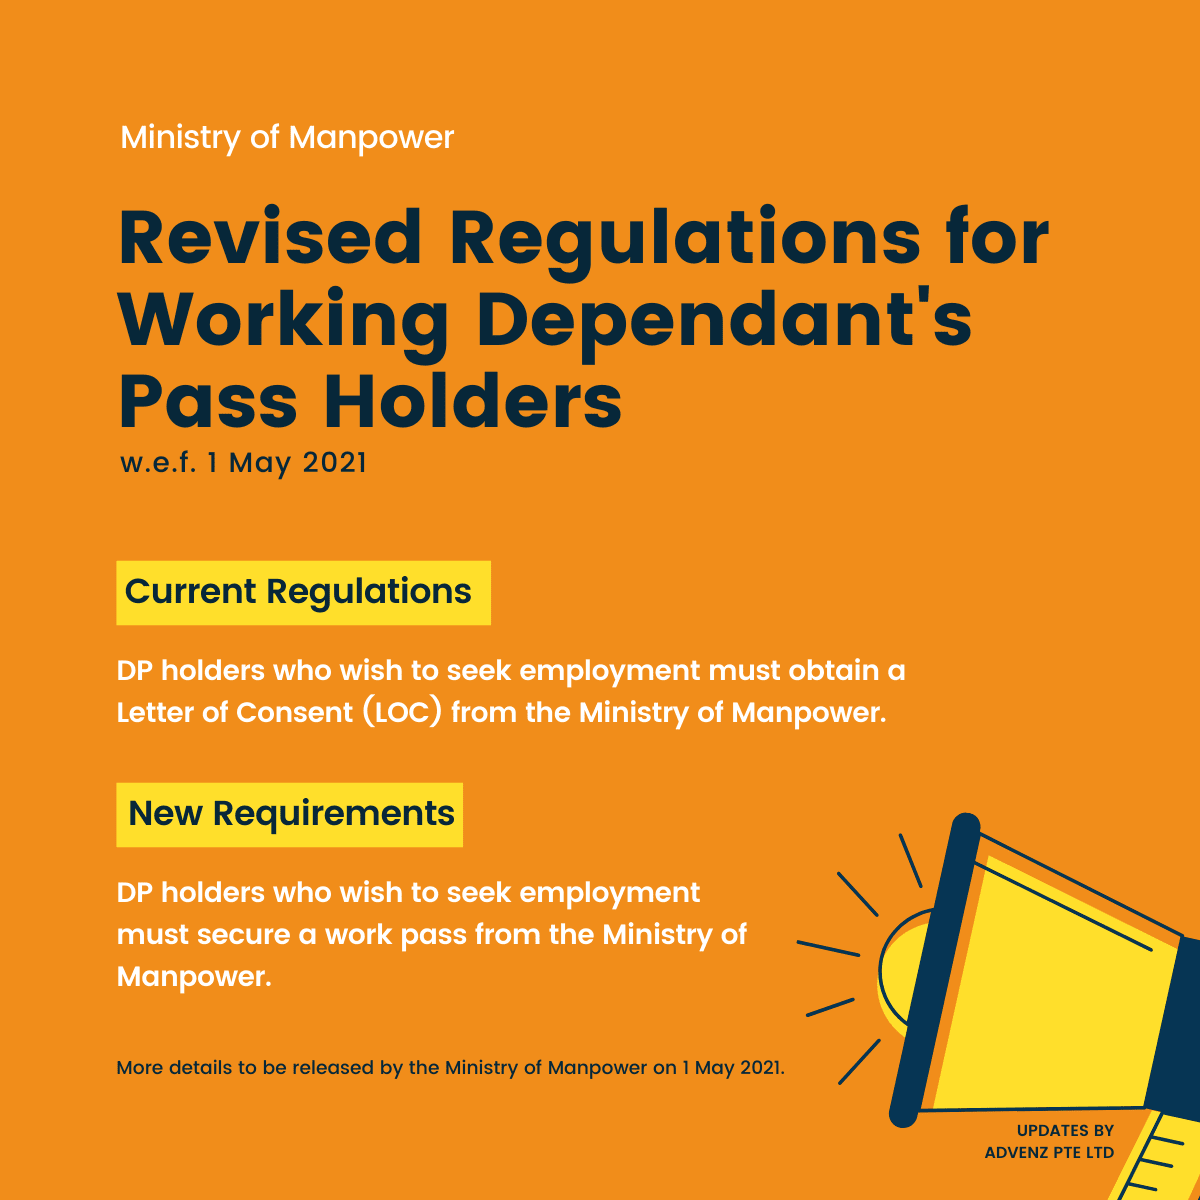 Revised Regulations for Working Dependant's Pass Holders (MOM)